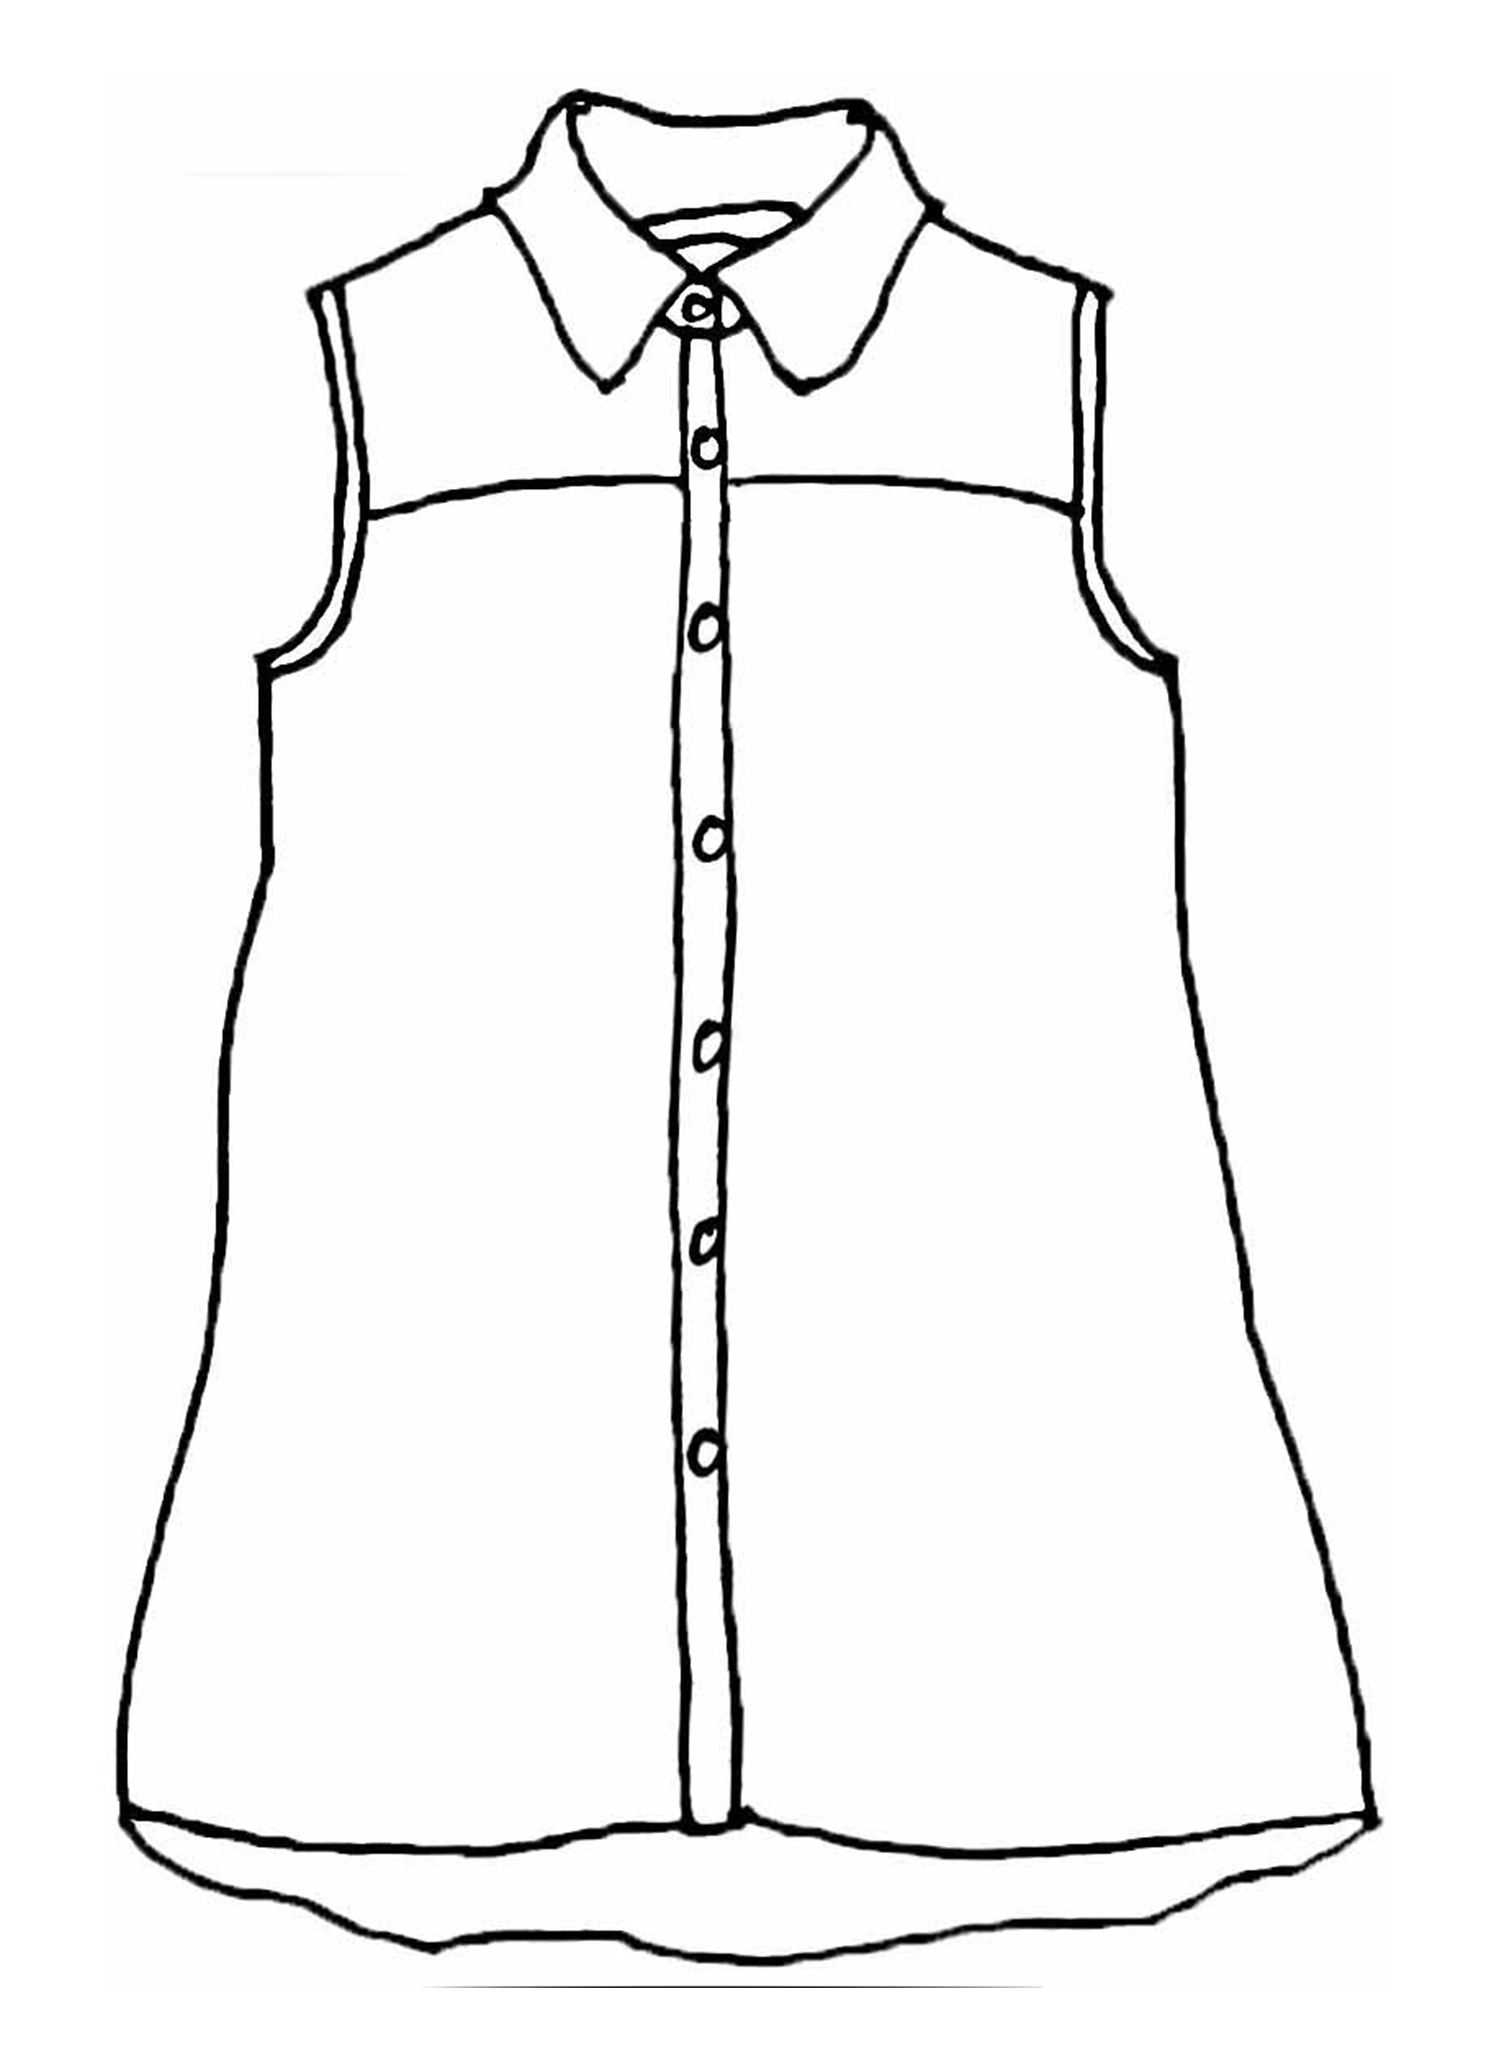 Skyline Blouse sketch image